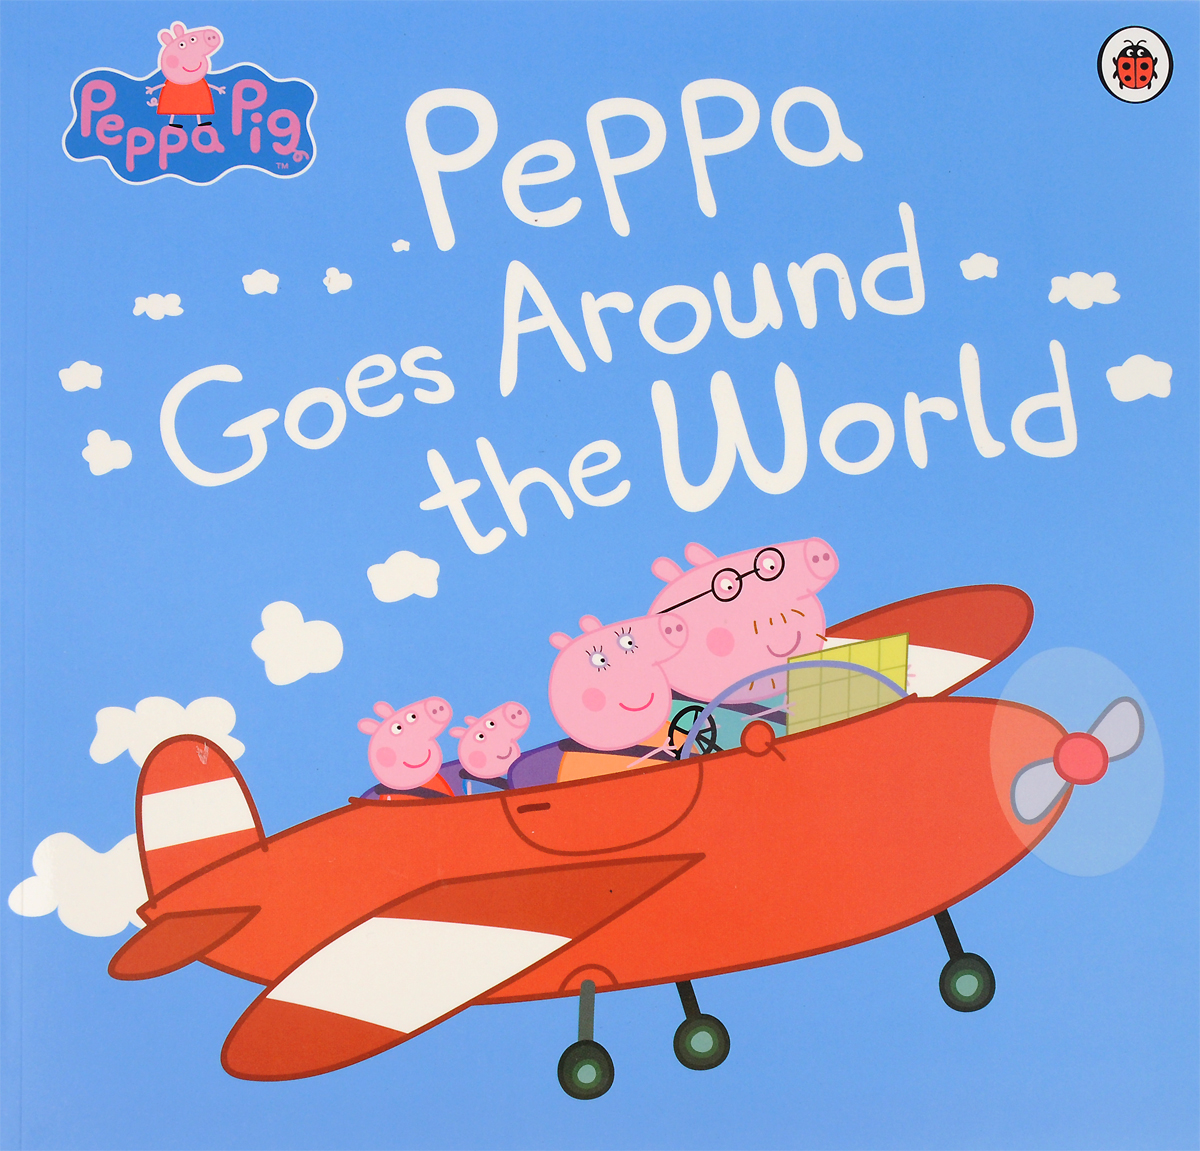 все цены на  Peppa Pig: Peppa Goes Around the World  в интернете